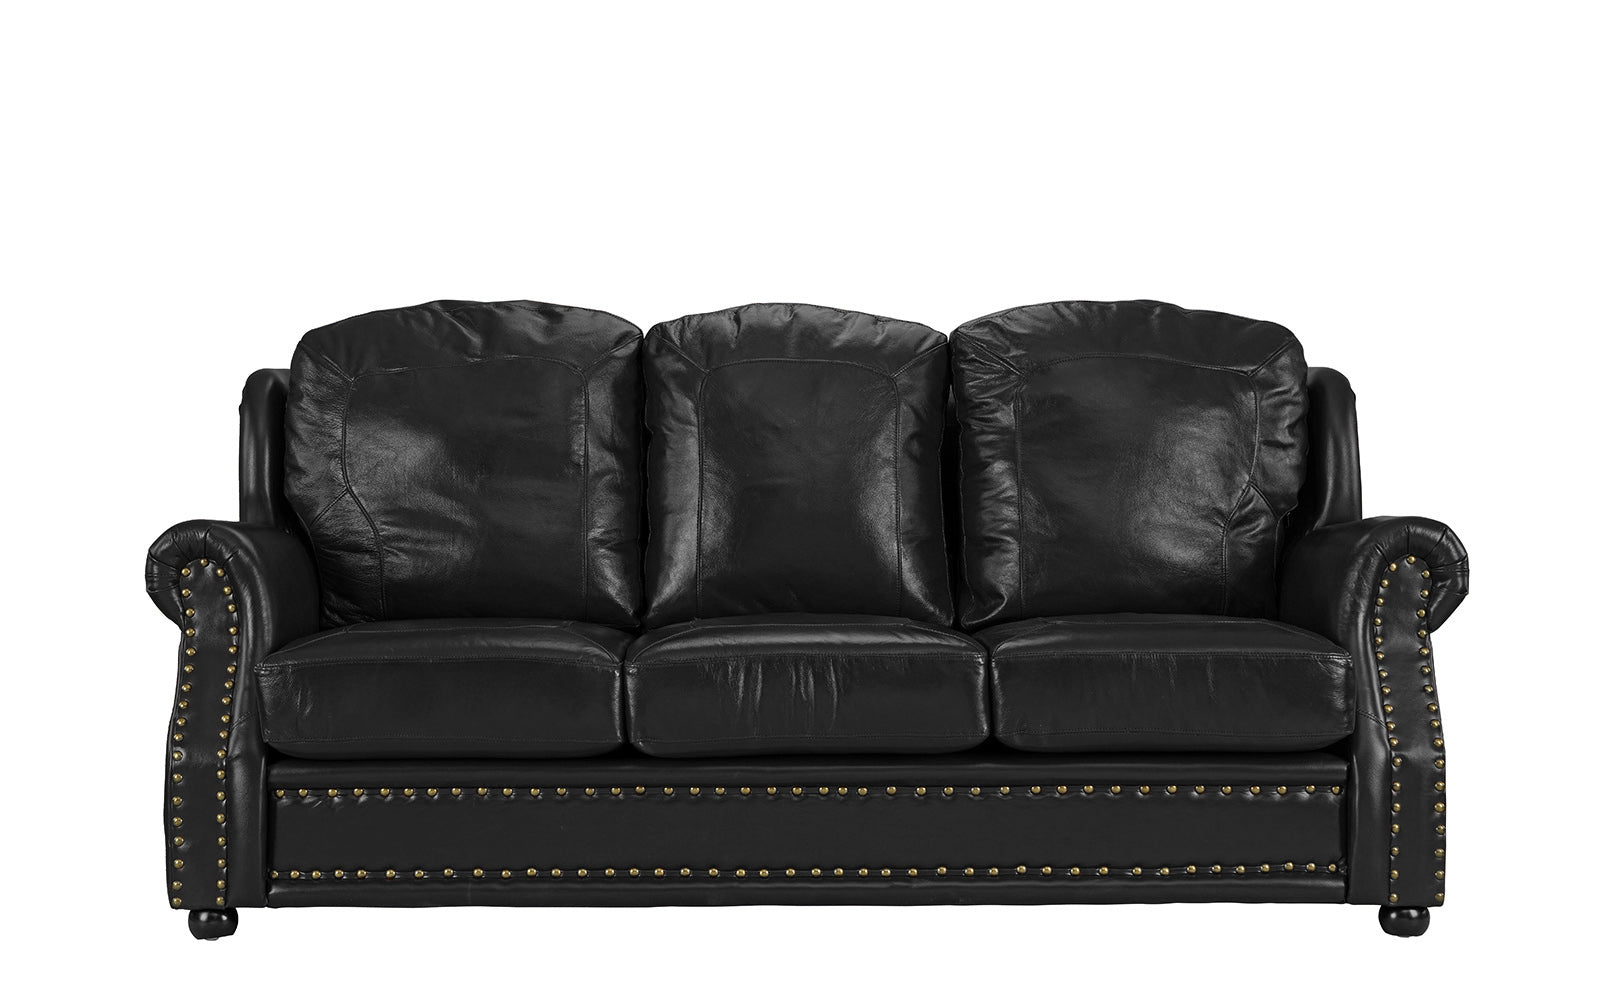 Astonishing Savannah Classic Executive Style Top Gain Leather Match Sofa Alphanode Cool Chair Designs And Ideas Alphanodeonline